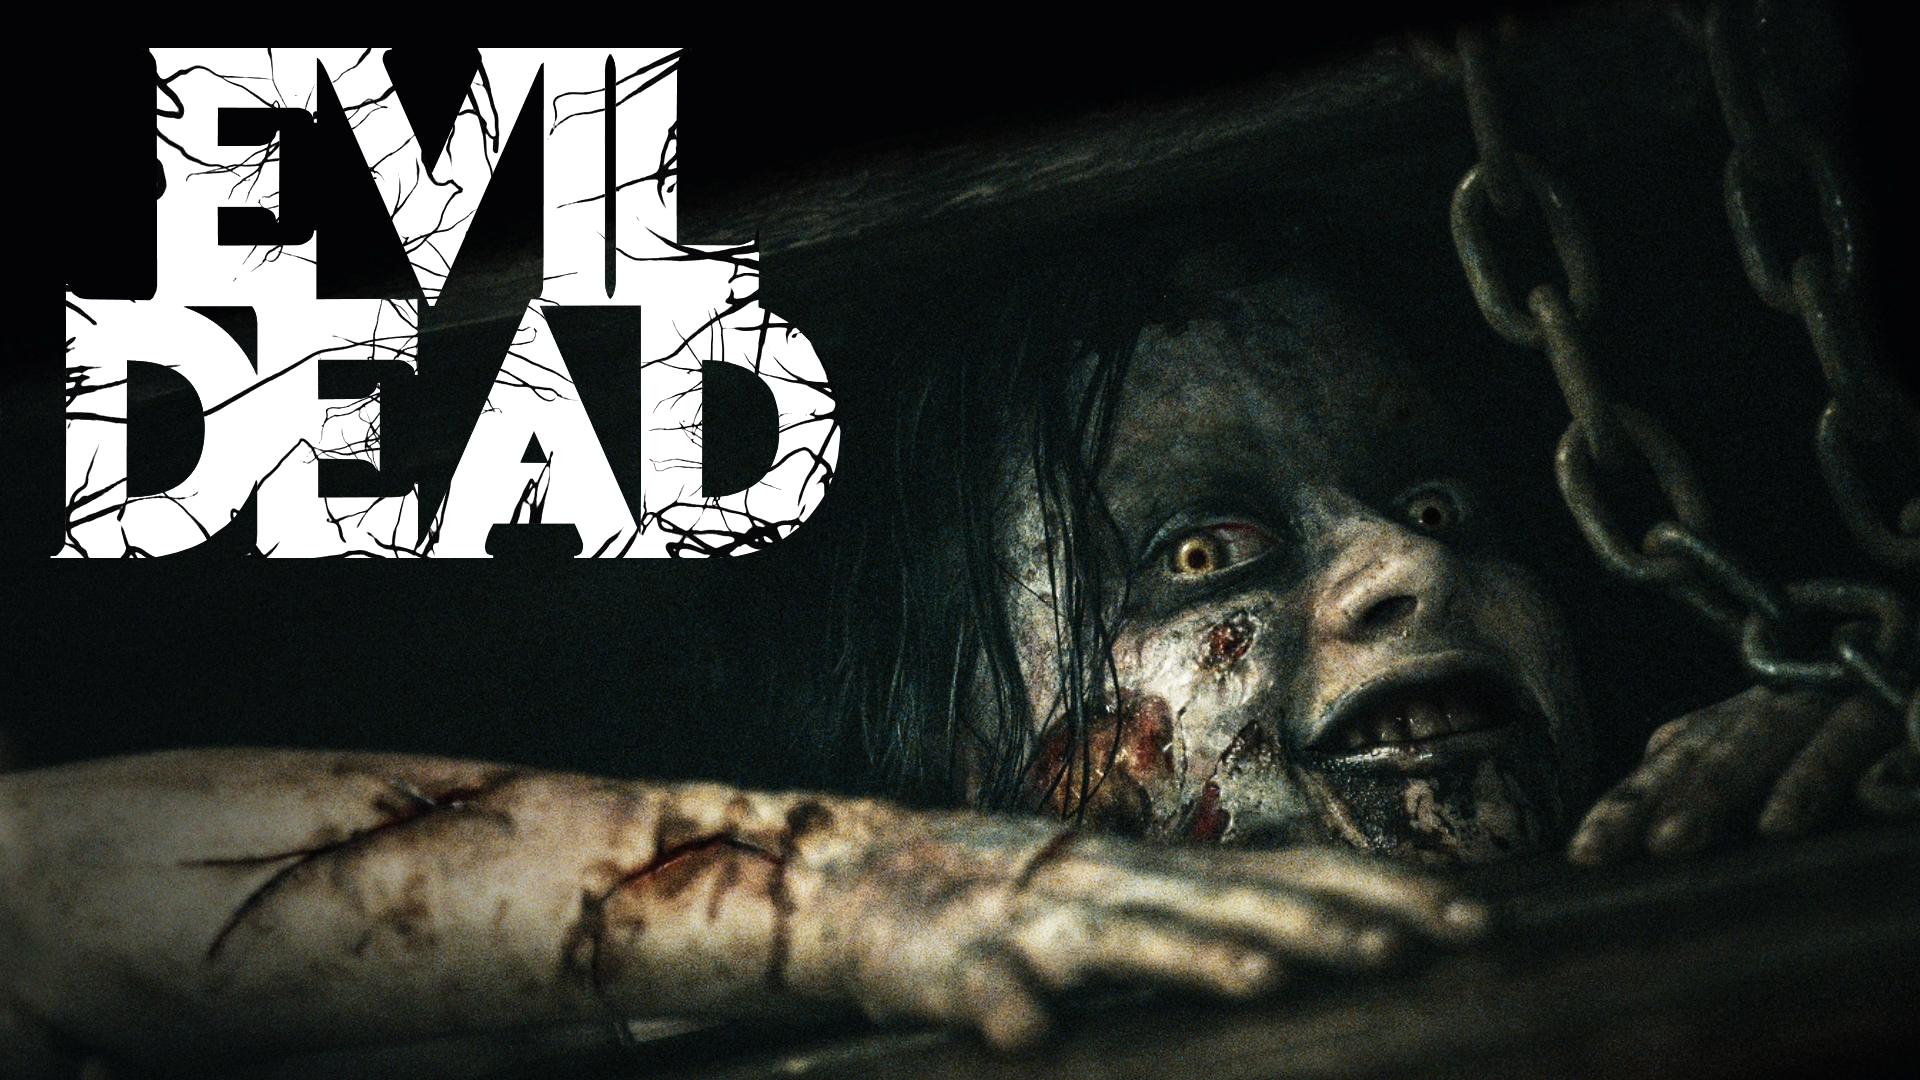 HHN 23 Evil Dead Wallpaper 3 | Horror Night Nightmares